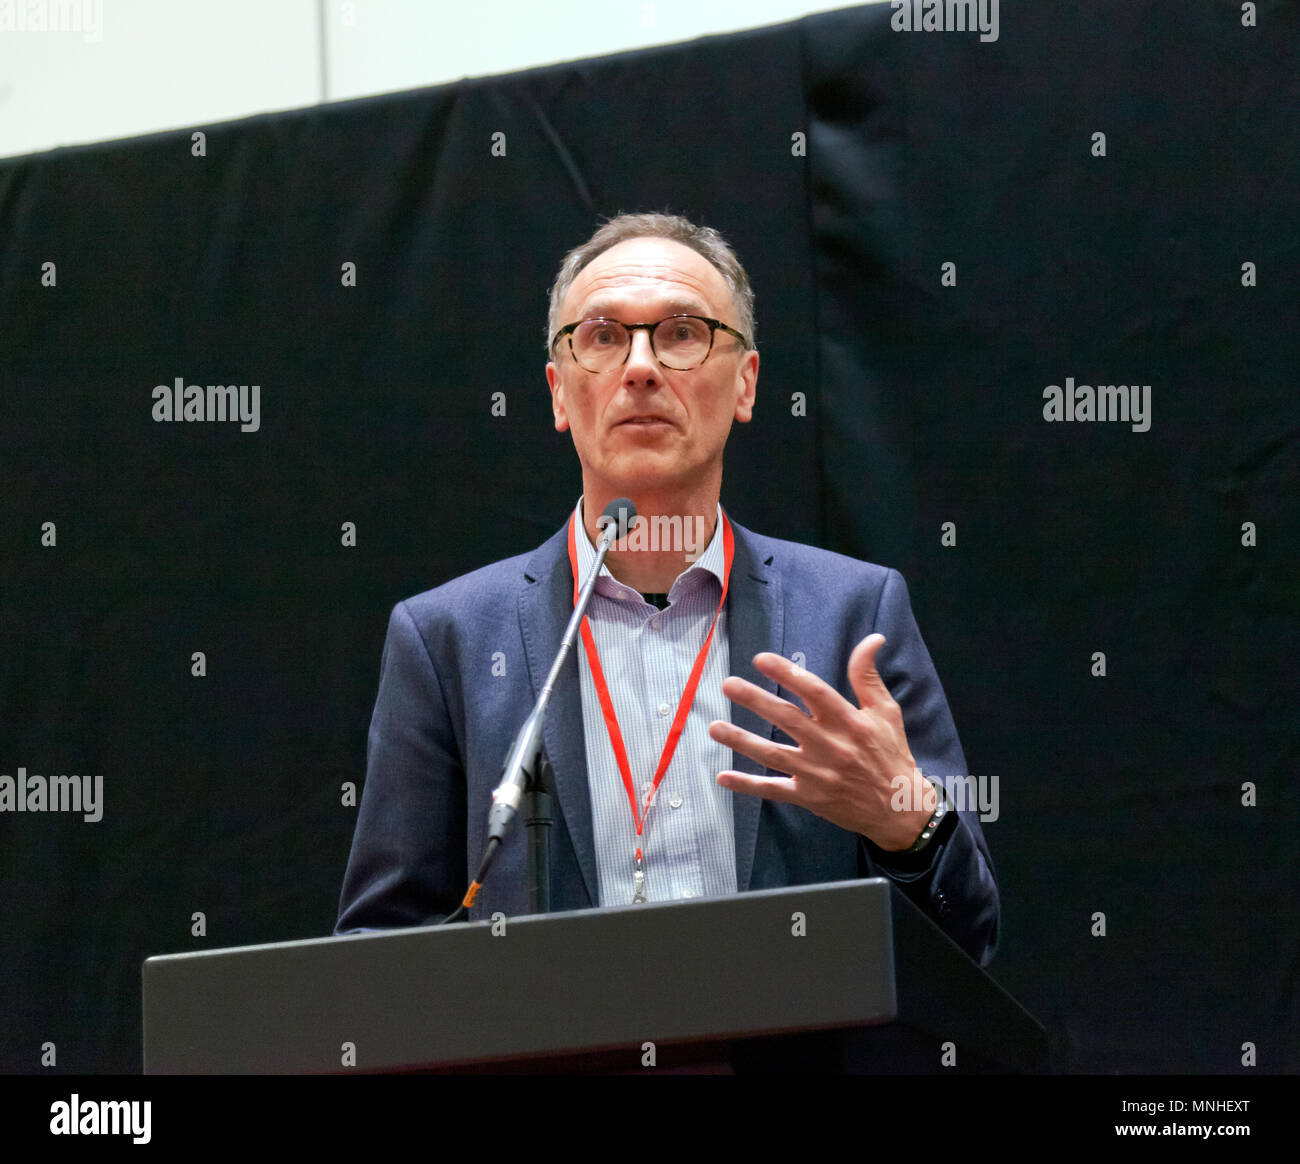 Prof. Dr. Andreas Herrmann,  giving a lecture on Autonomous Driving, at the Lecture Theatre, during the press day of the London Motor Show 2018. - Stock Image